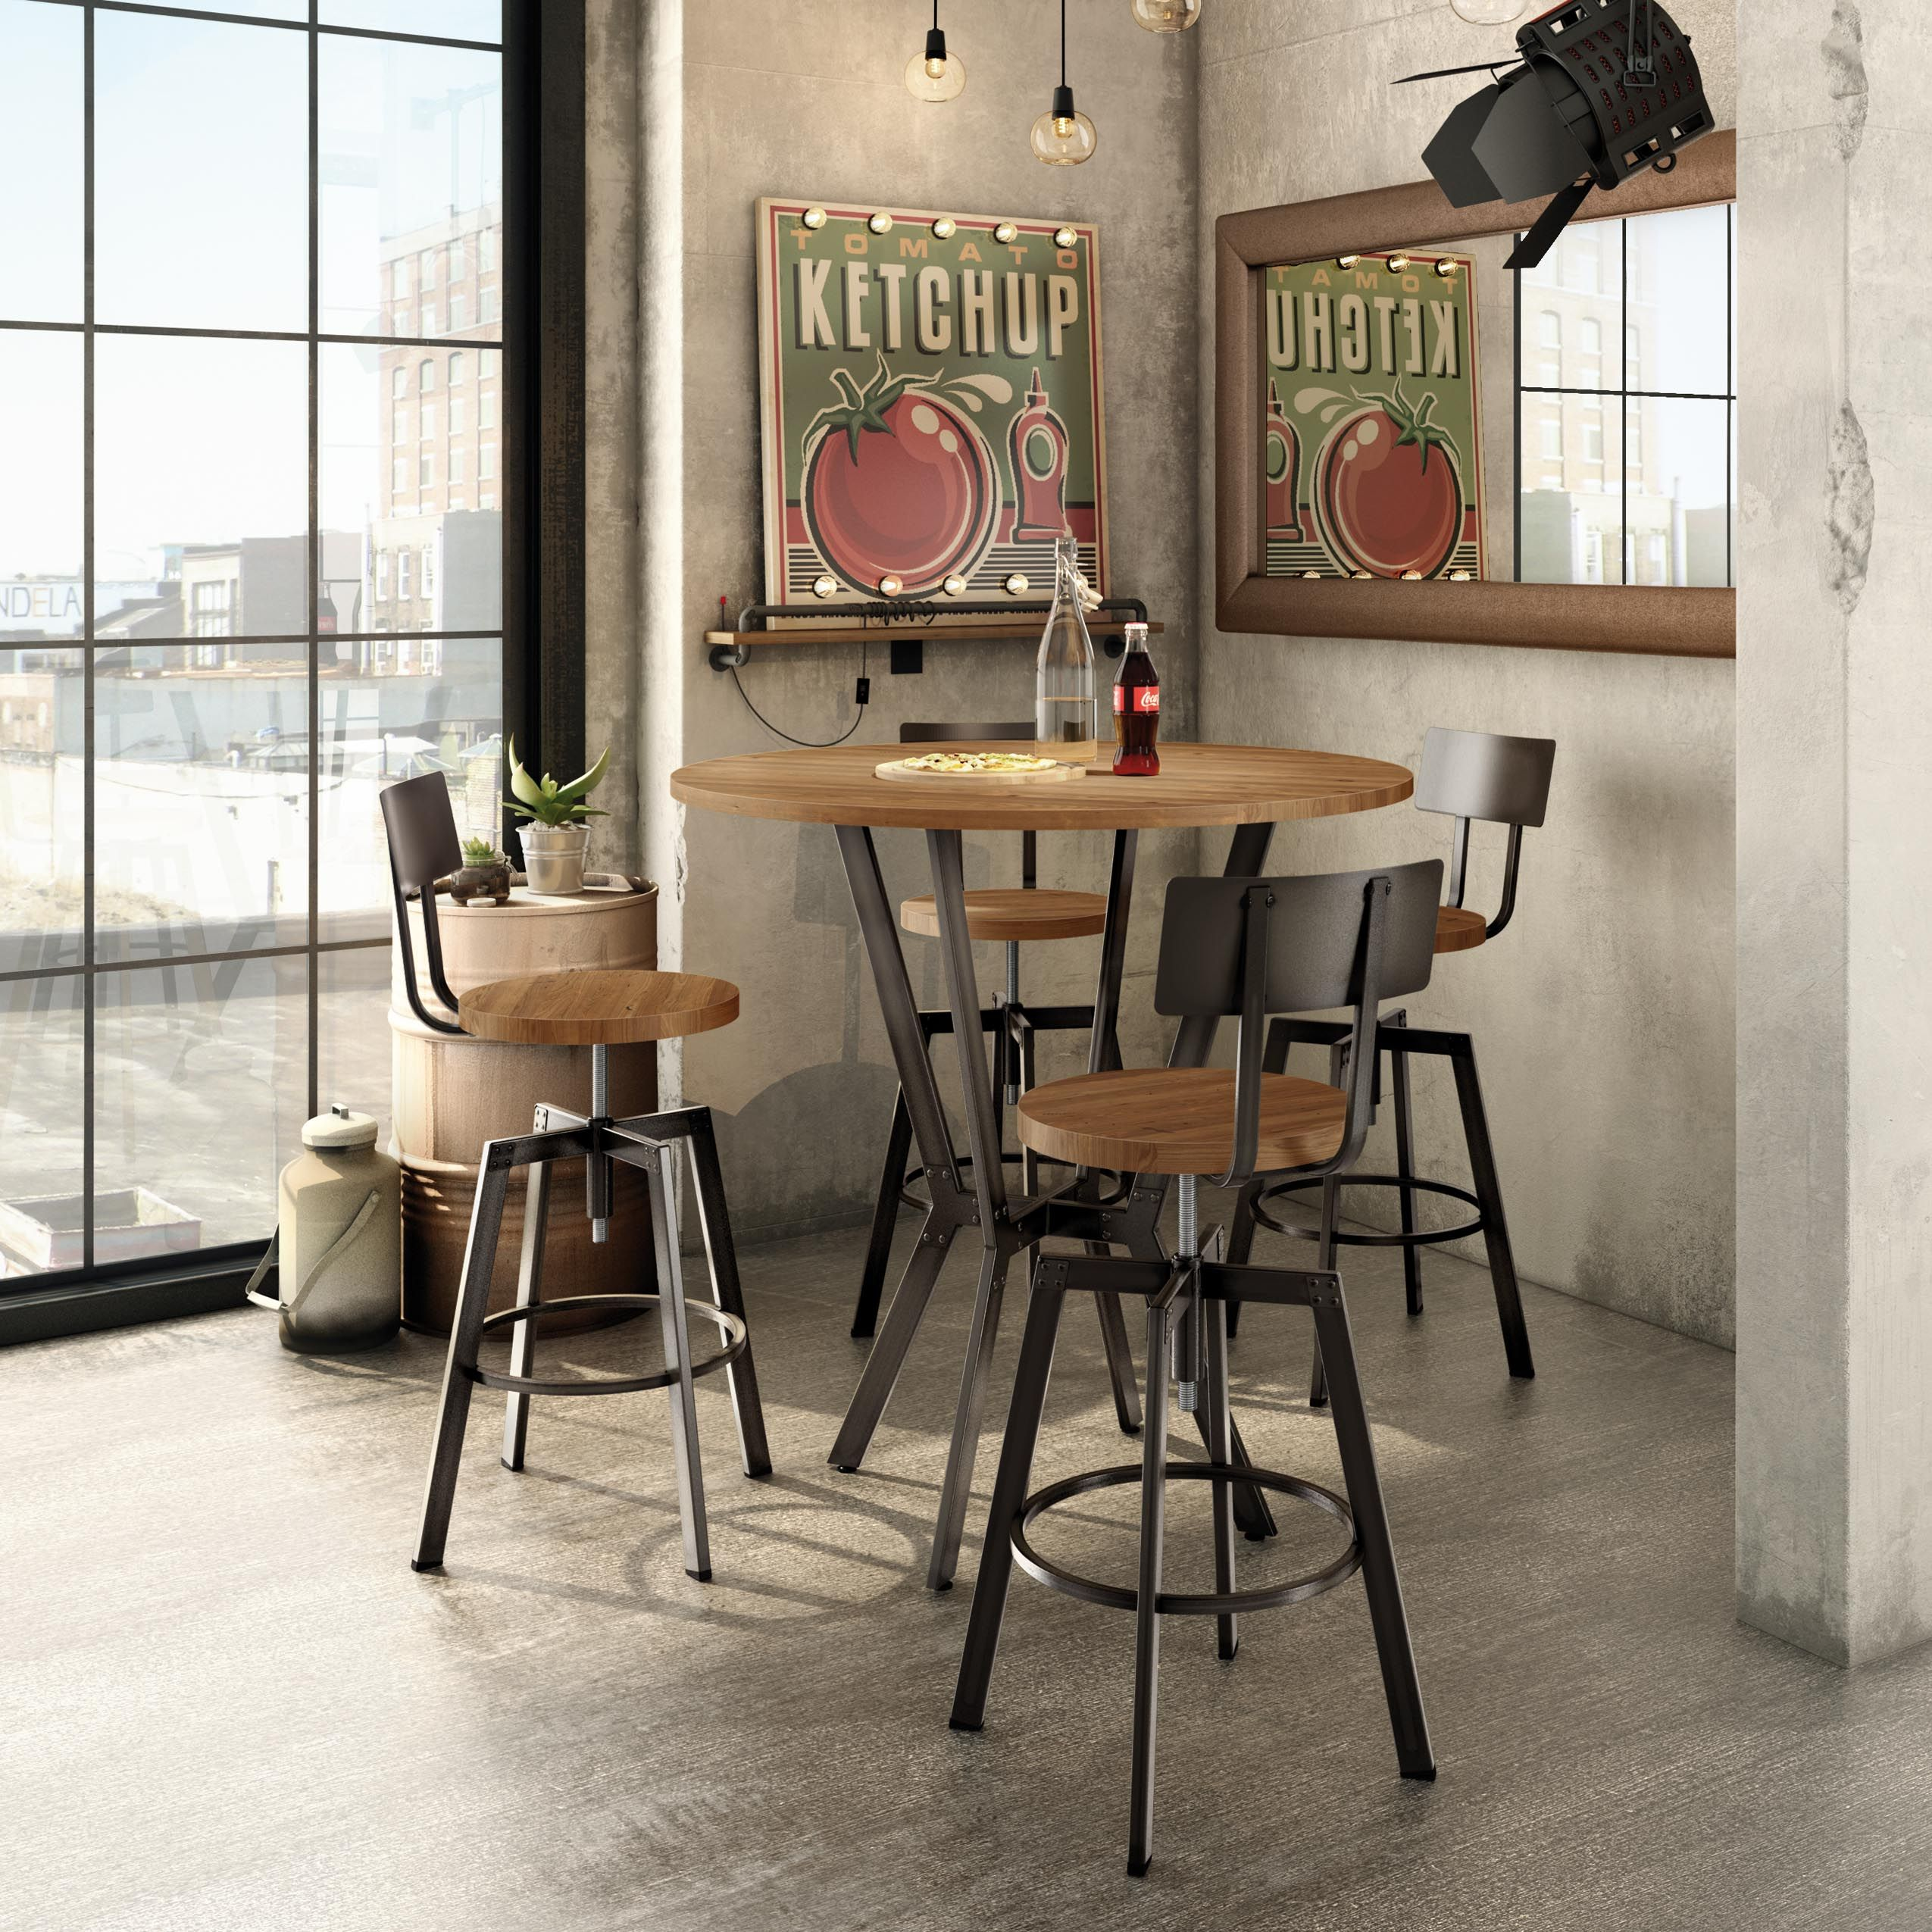 amisco industries ltd architect screw stool and norcross pub table industrial collection - Amisco Bar Stools